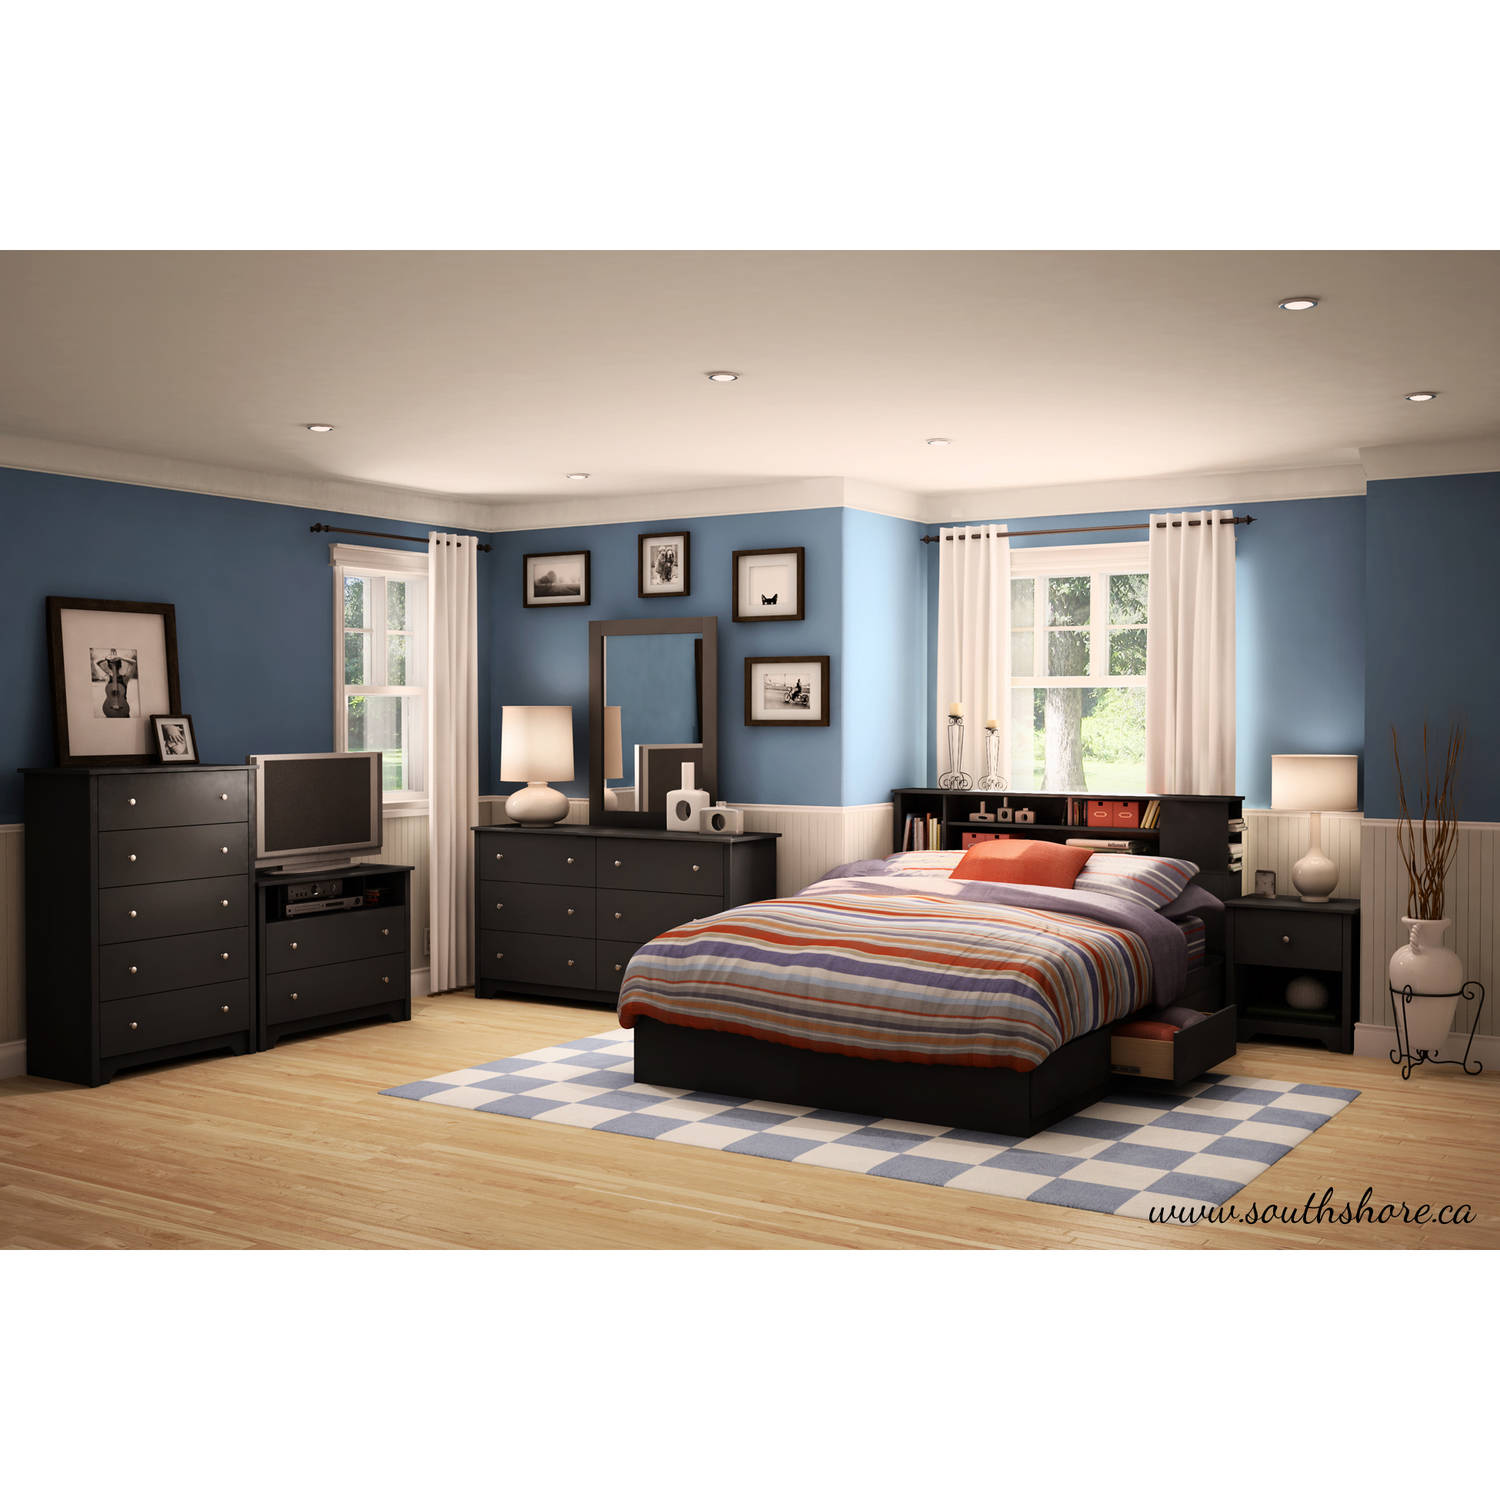 Bookcase Bedroom Furniture South Shore Vito Full Queen Bookcase Headboard 54 60 Multiple